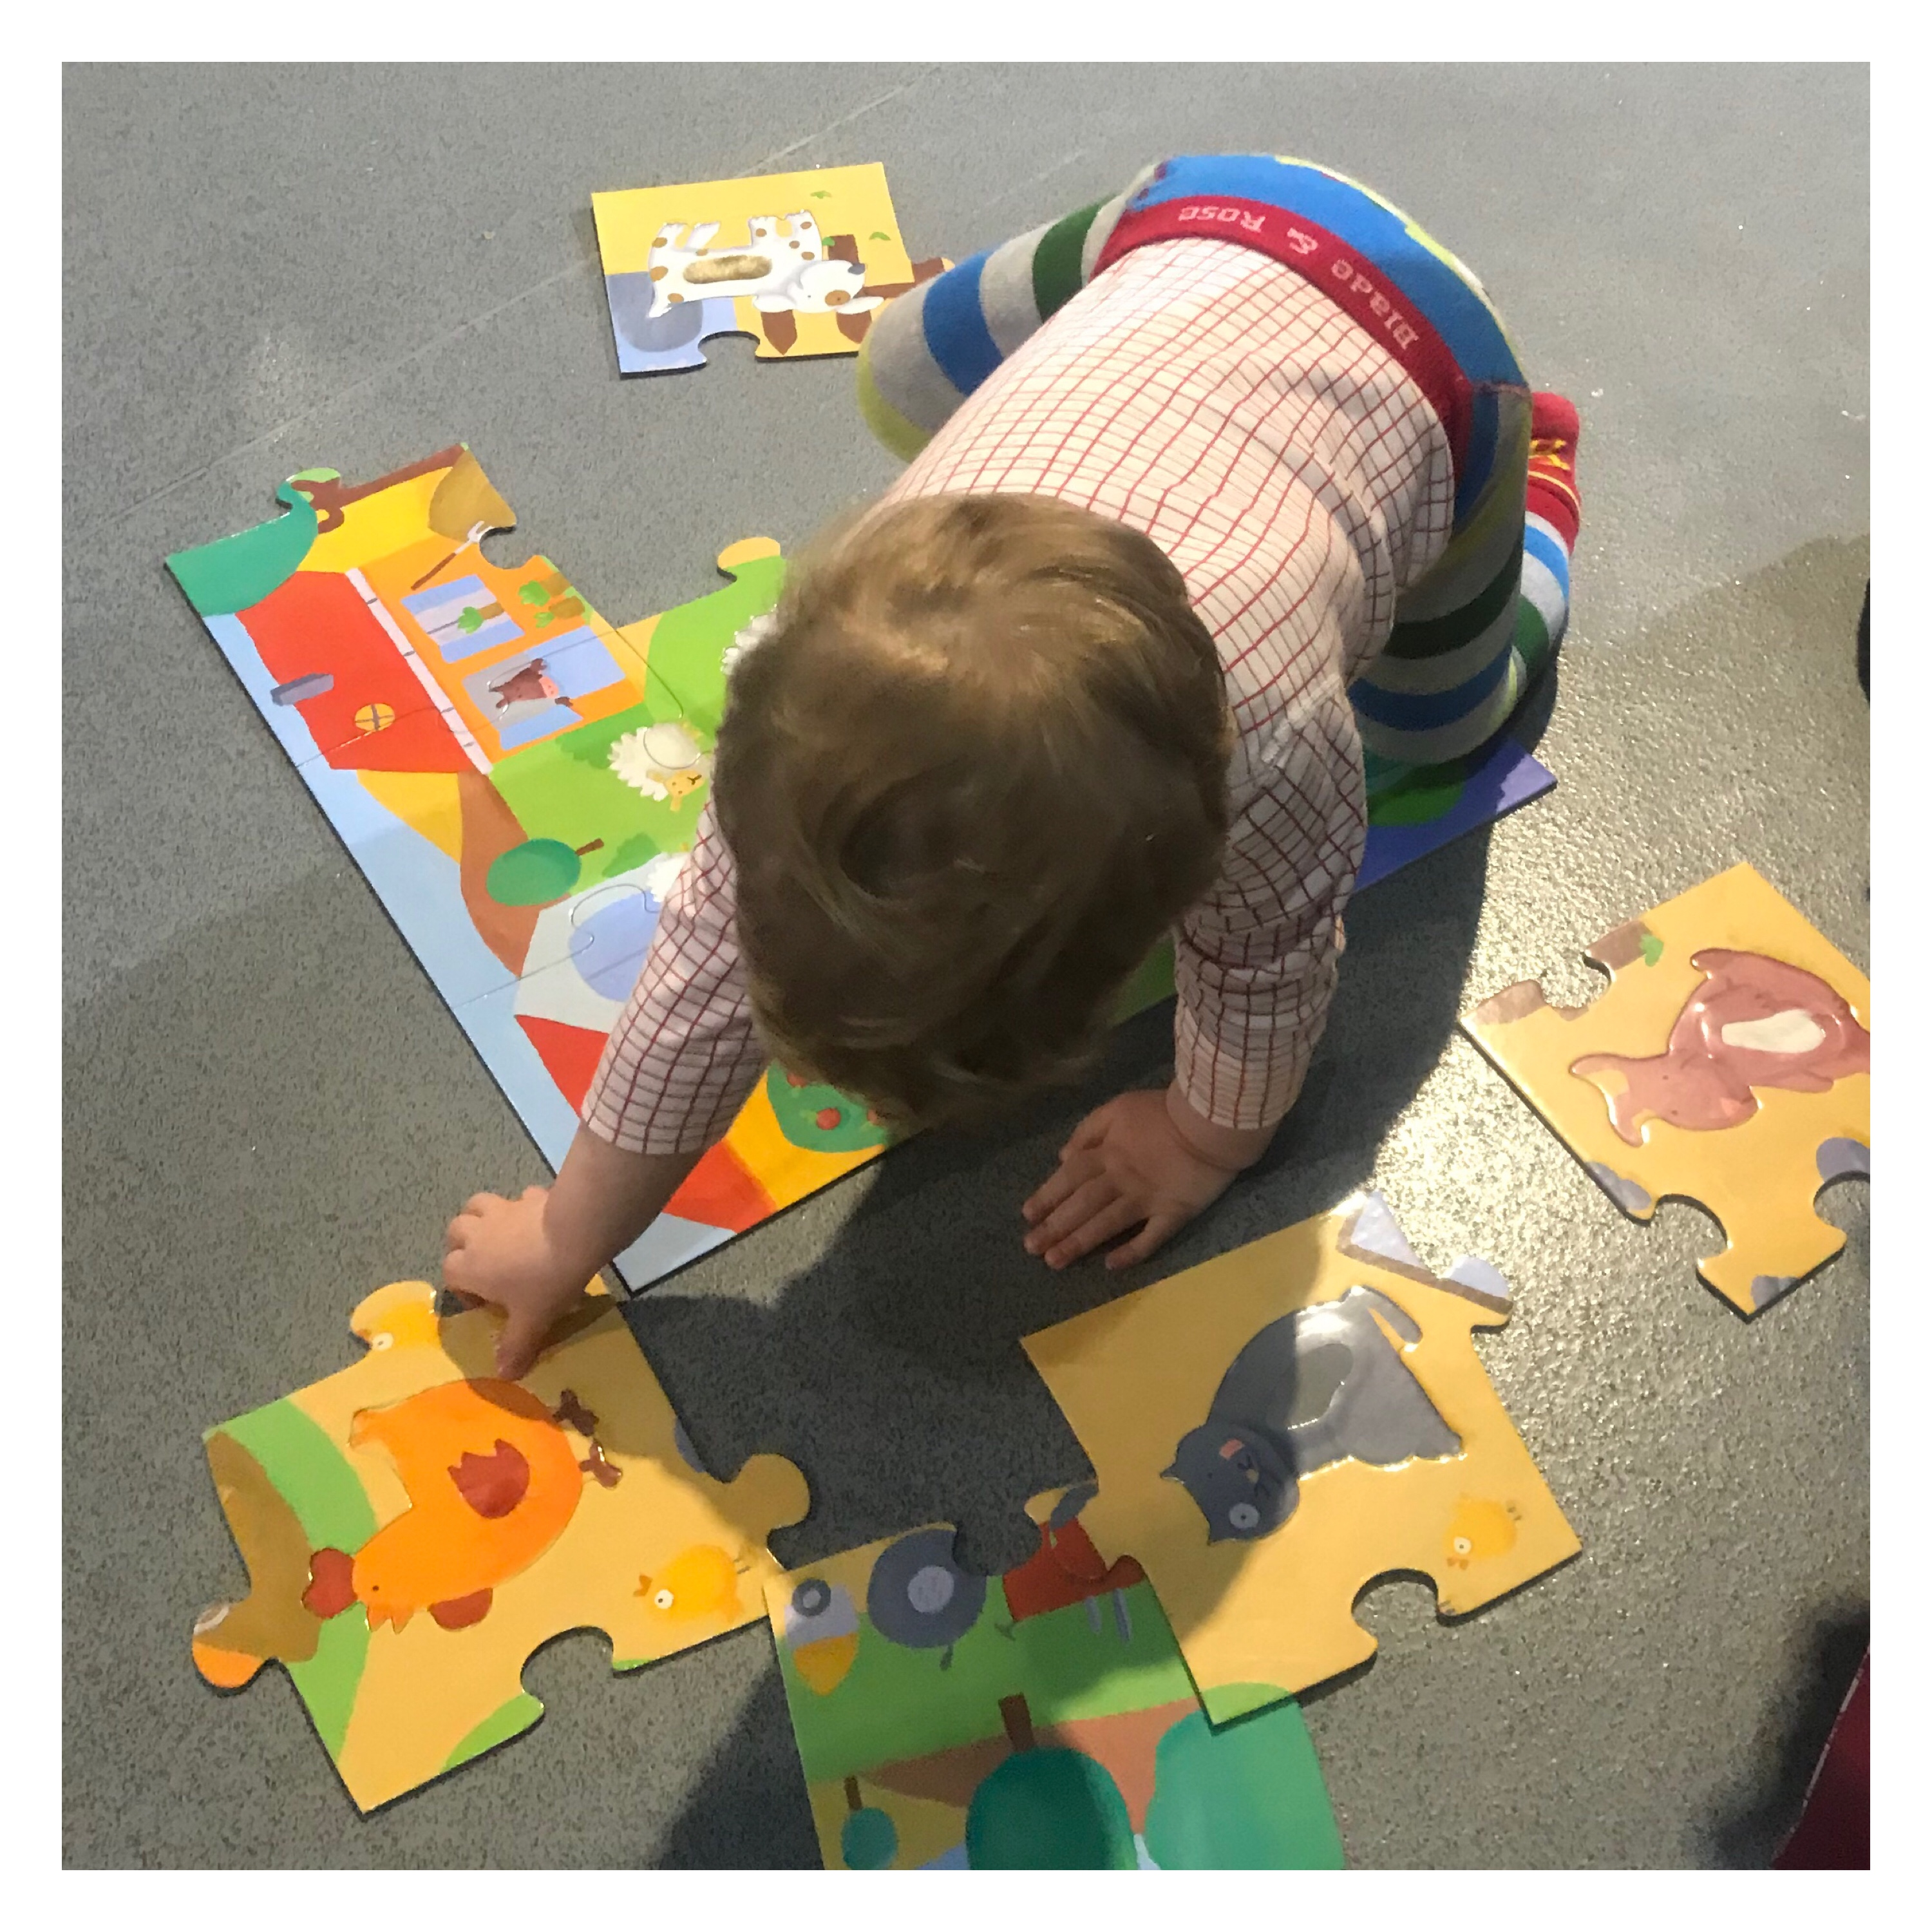 2yr old doing a jigsaw on the floor